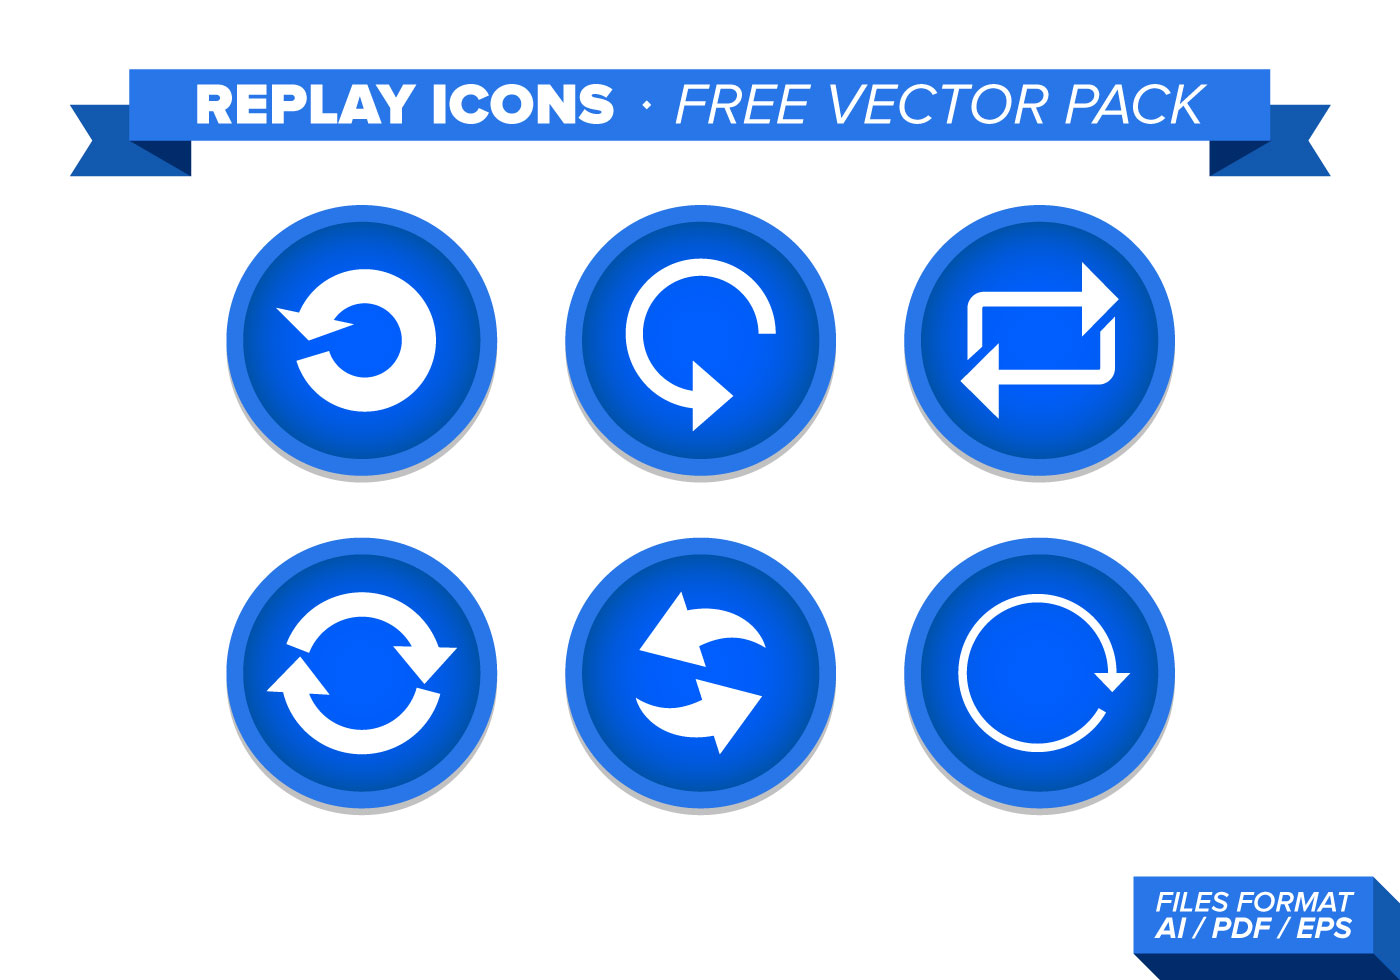 Replay Icons Free Vector Pack - Download Free Vector Art ...